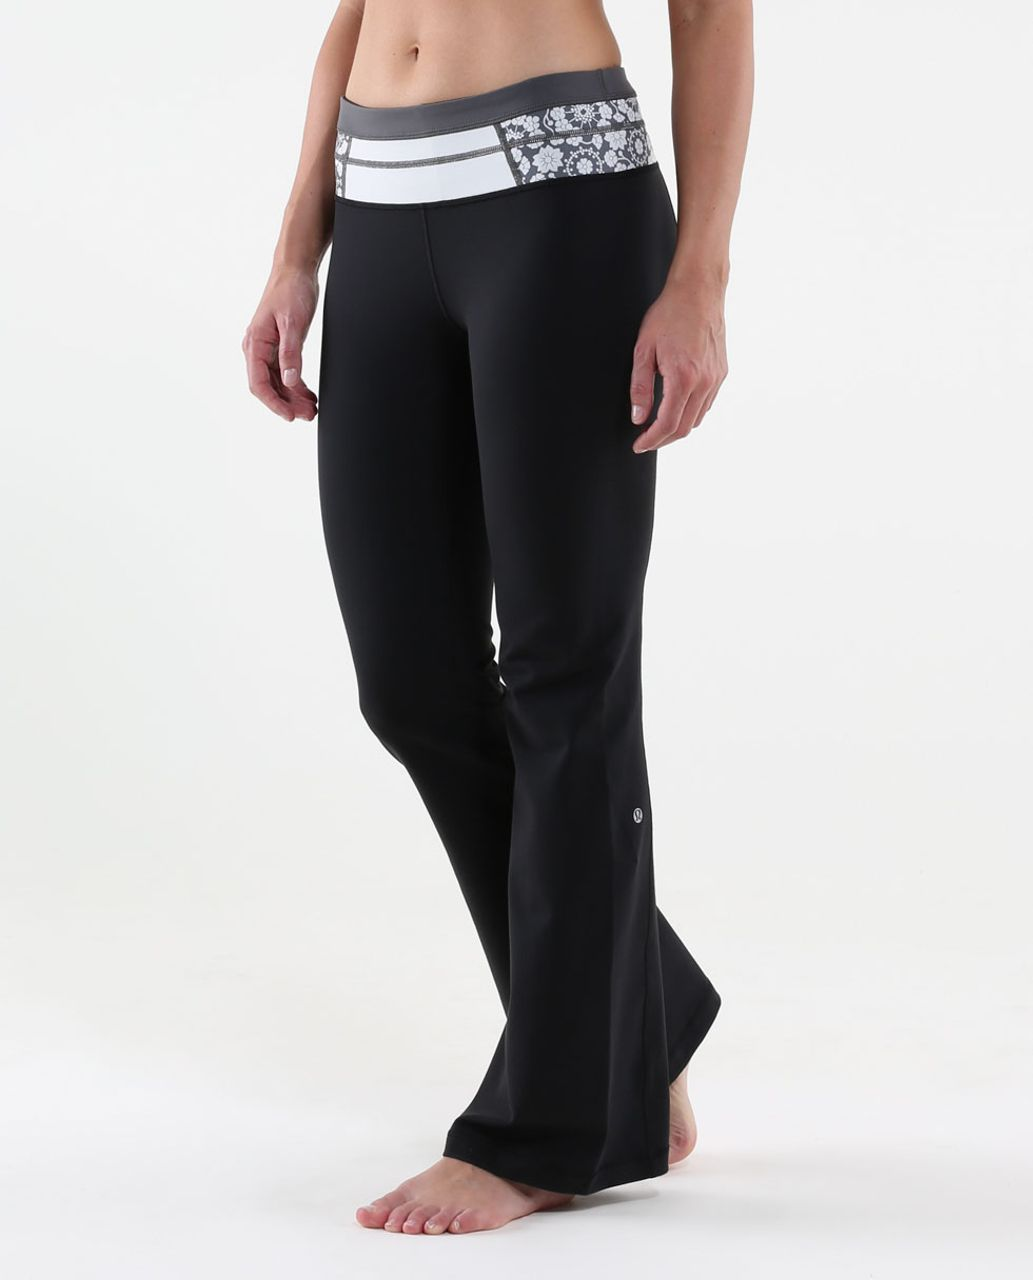 Lululemon Groove Pant (Regular) - Black / Quilt Summer13 2